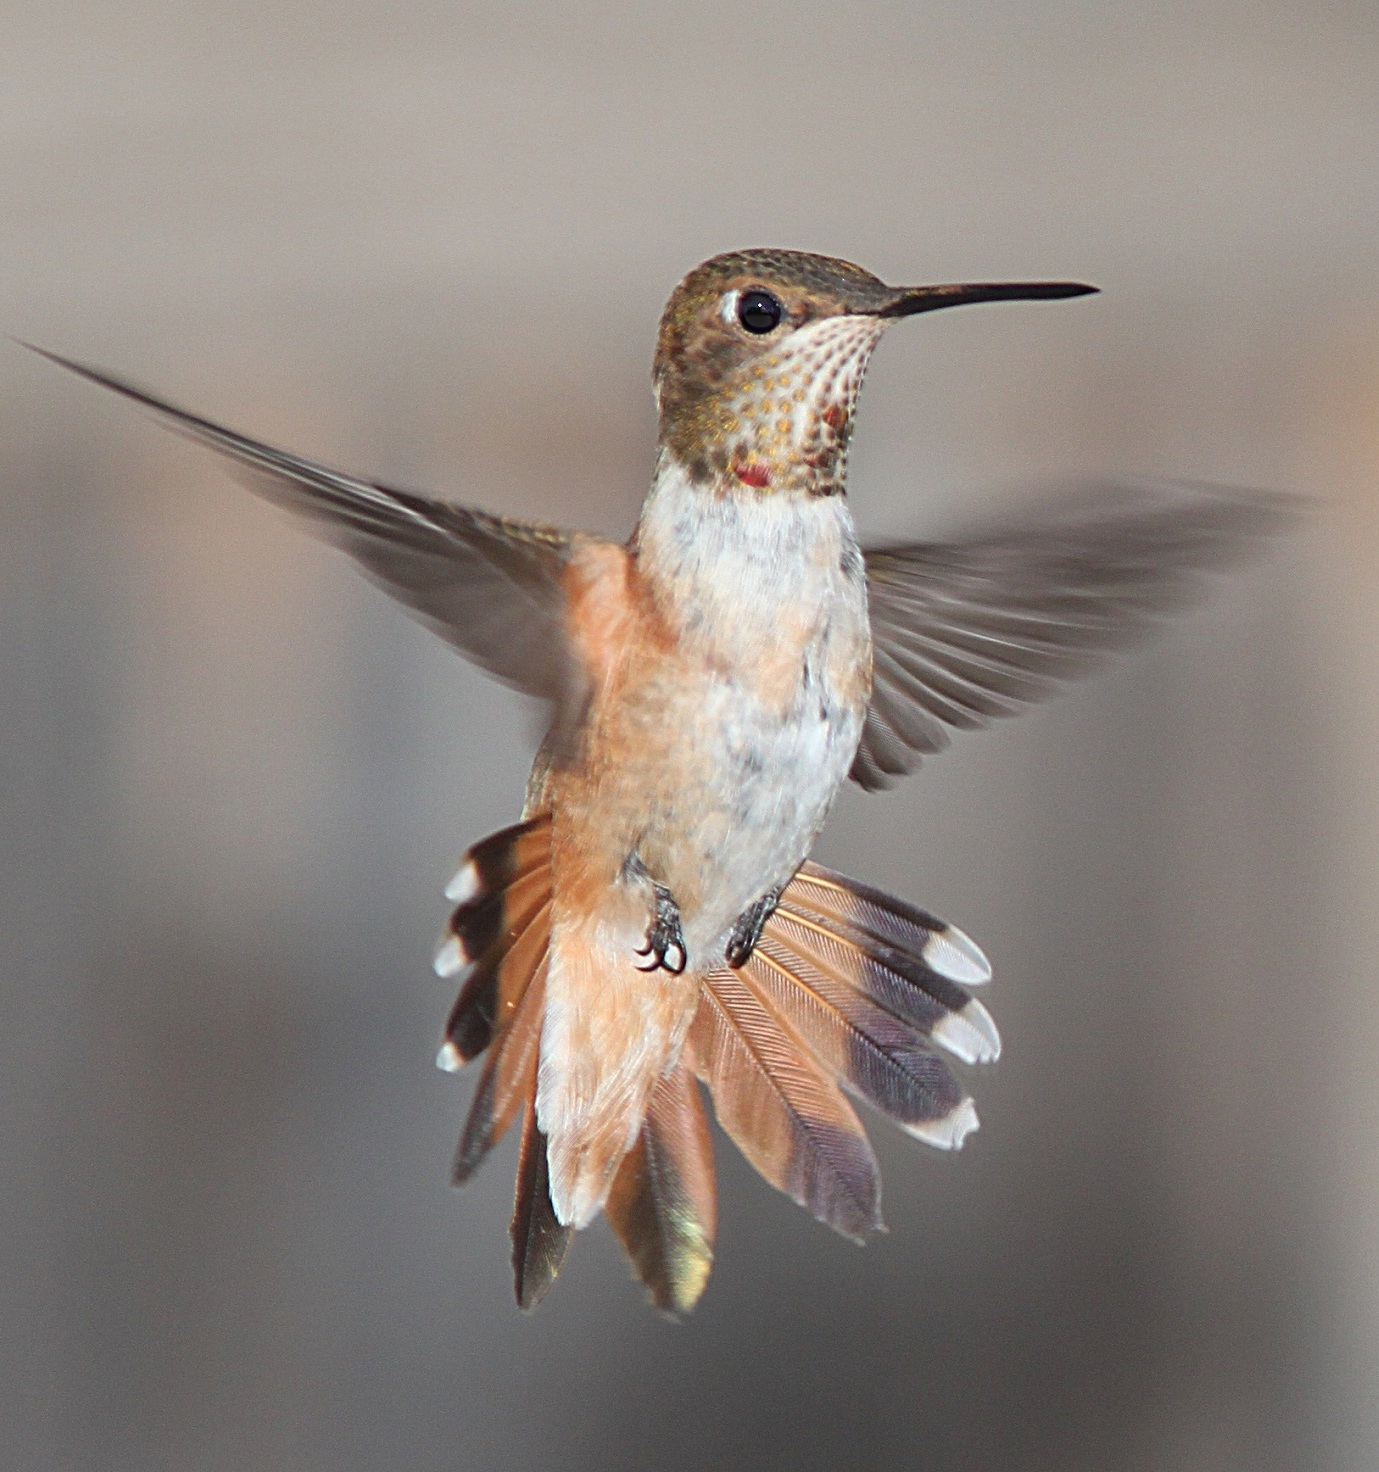 Picture of a humming bird in flight.